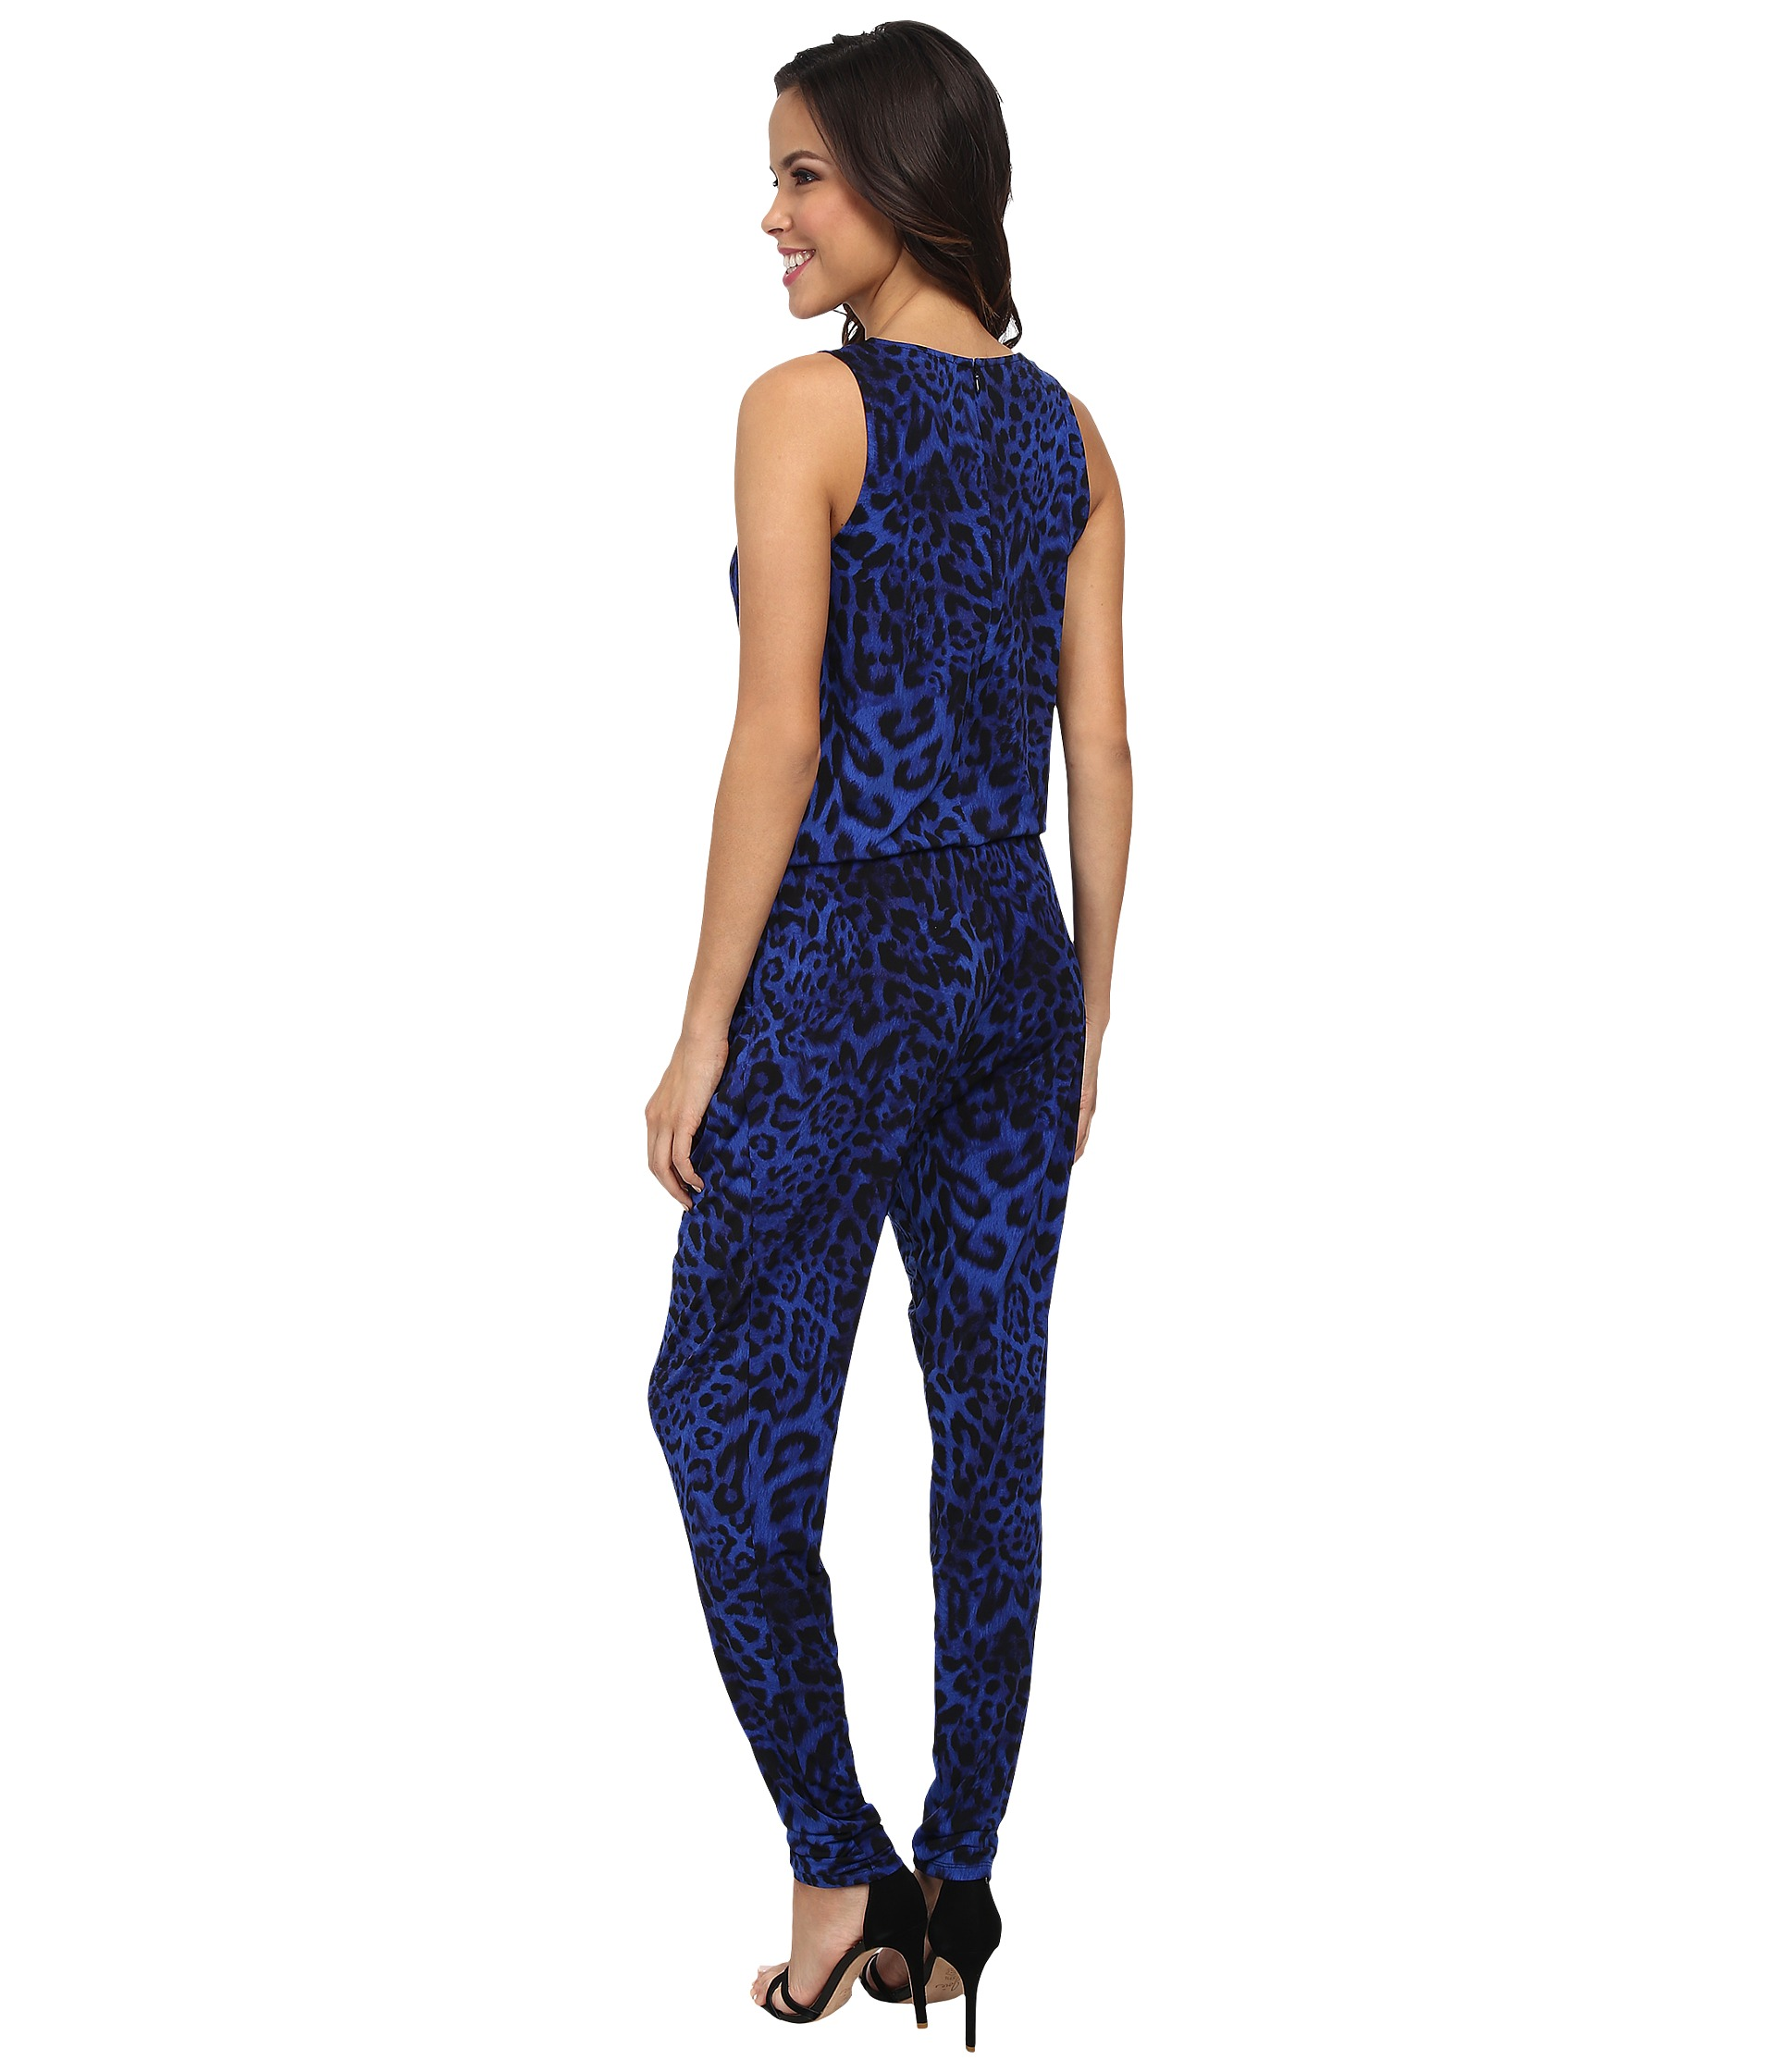 michael michael kors freemont sleeveless cowl jumpsuit amalfi blue shipped free at zappos. Black Bedroom Furniture Sets. Home Design Ideas